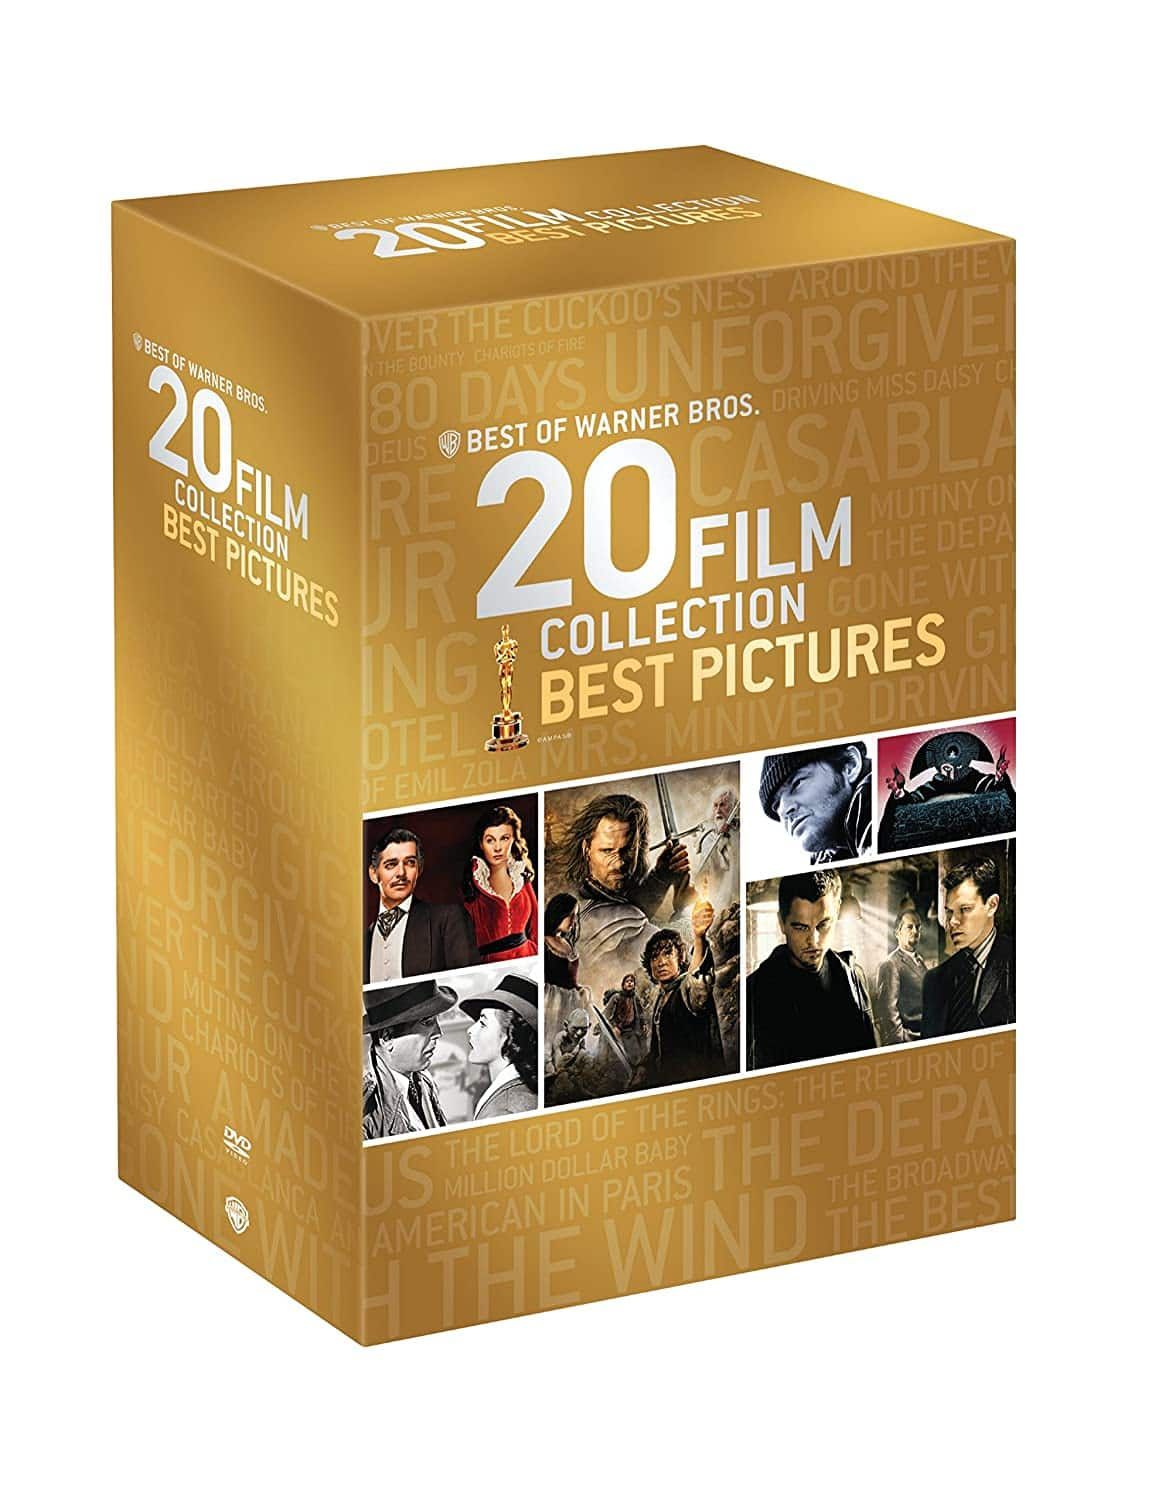 Best of Warner Bros 20 Film Collection: Best Pictures Oscar Winners - $19.96 on Amazon